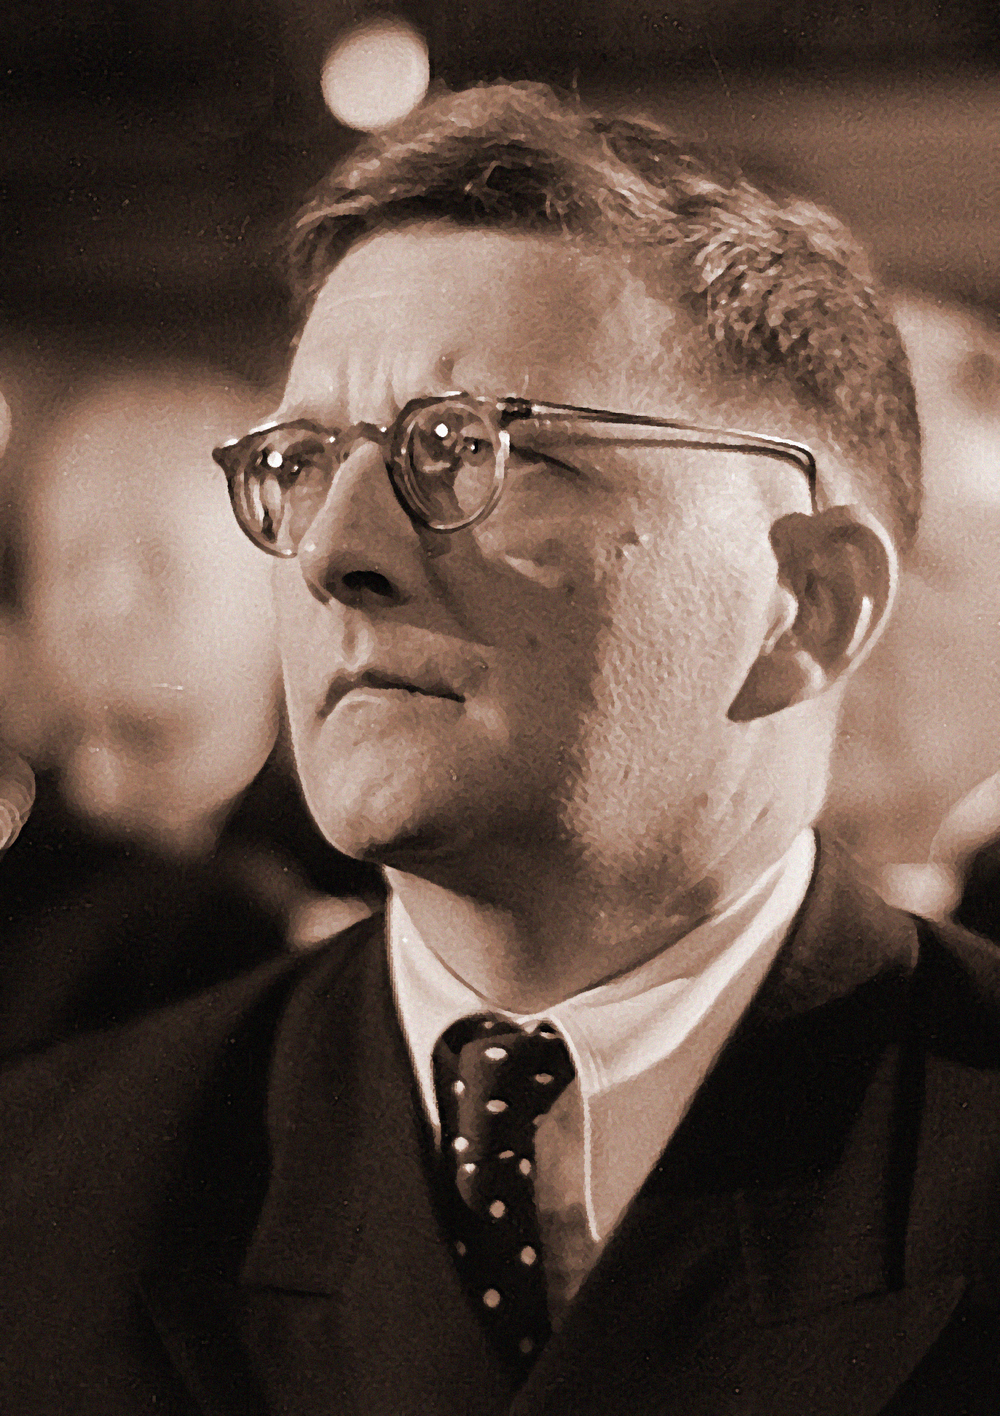 Dmitri_Shostakovich_credit_Deutsche_Fotothek_adjusted.jpg